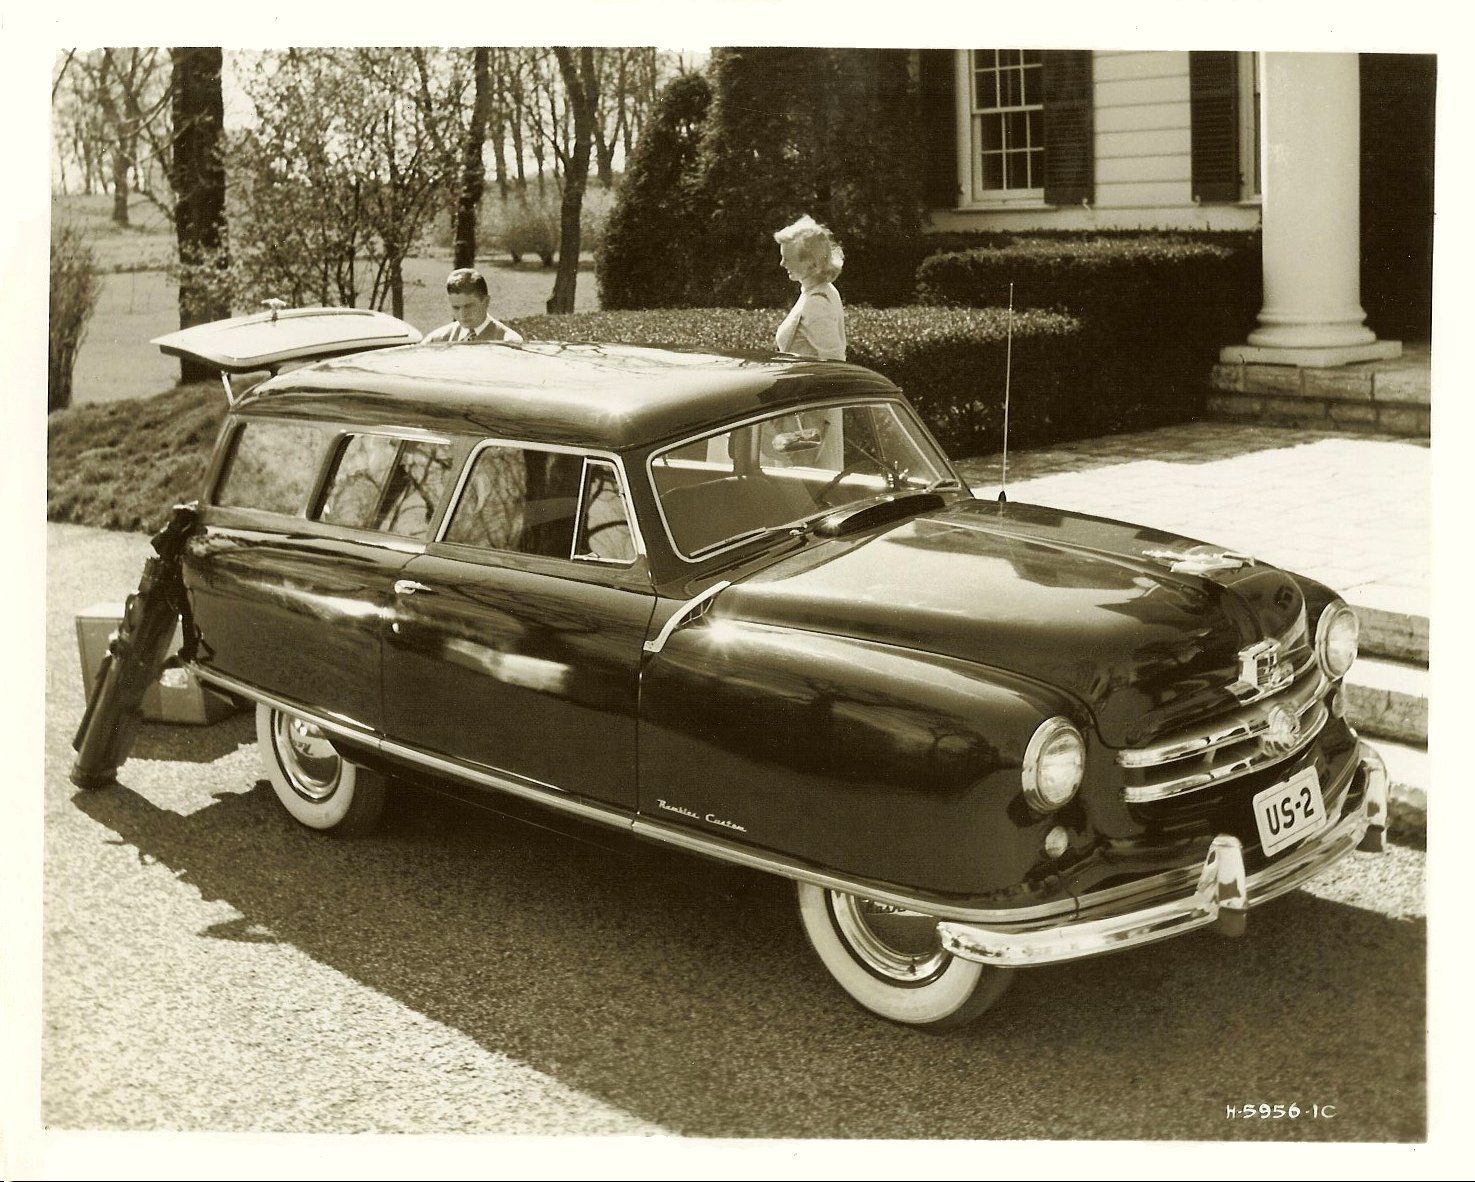 1951 NASH Rambler Custom Station Wagon Note: 1951 Flying Lady Hood Ornament 10″x8″ Black & White photograph H-5956-1C